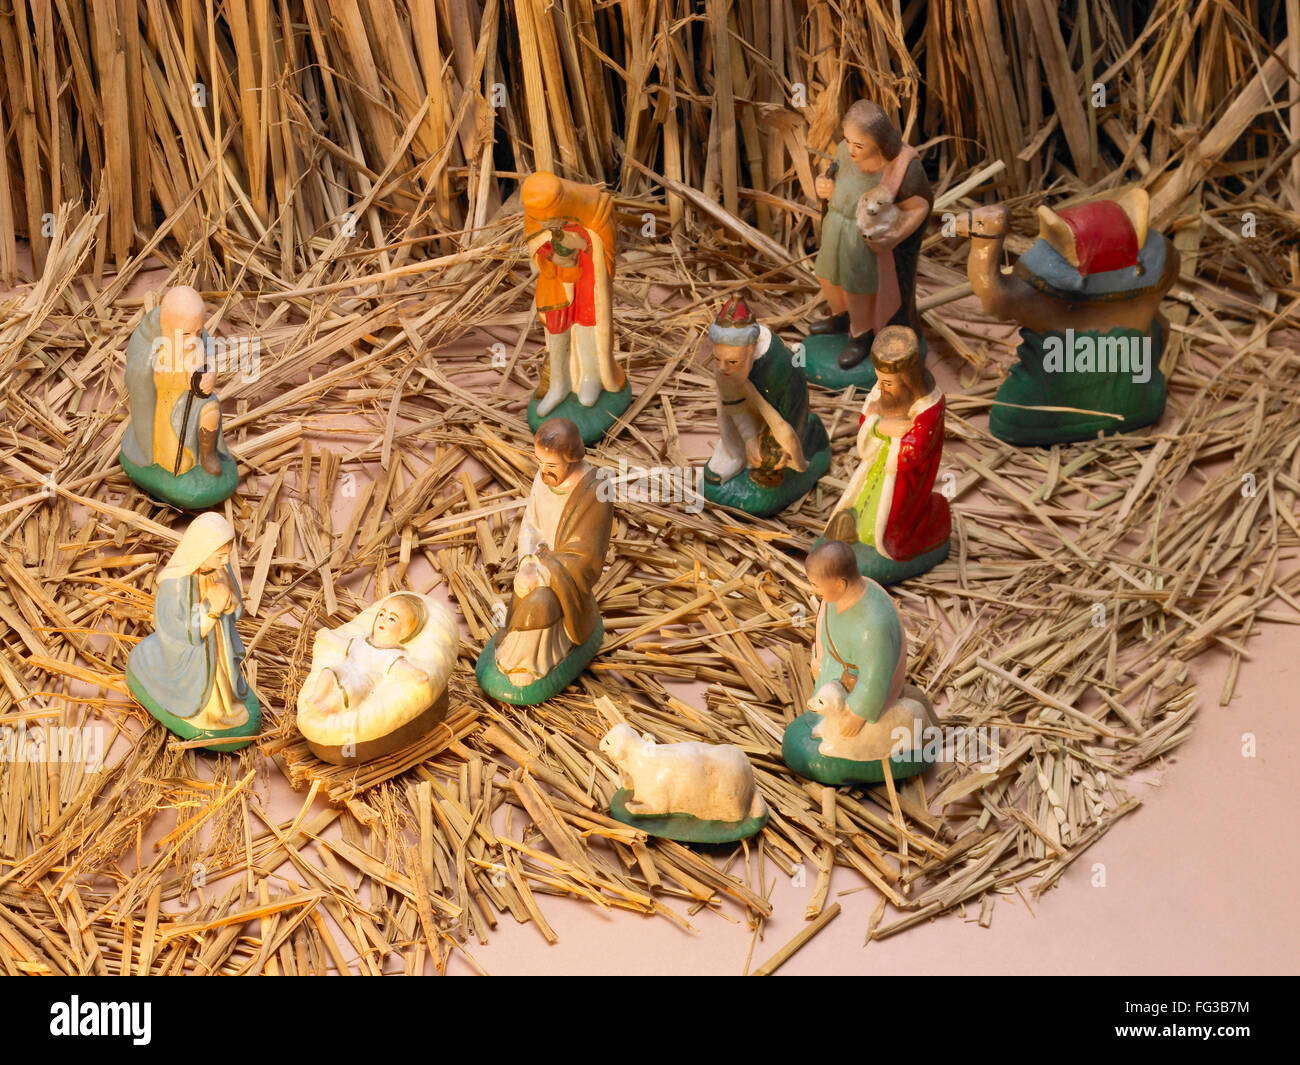 Birth of Jesus remembrance and re enactment of nativity scene - Stock Image